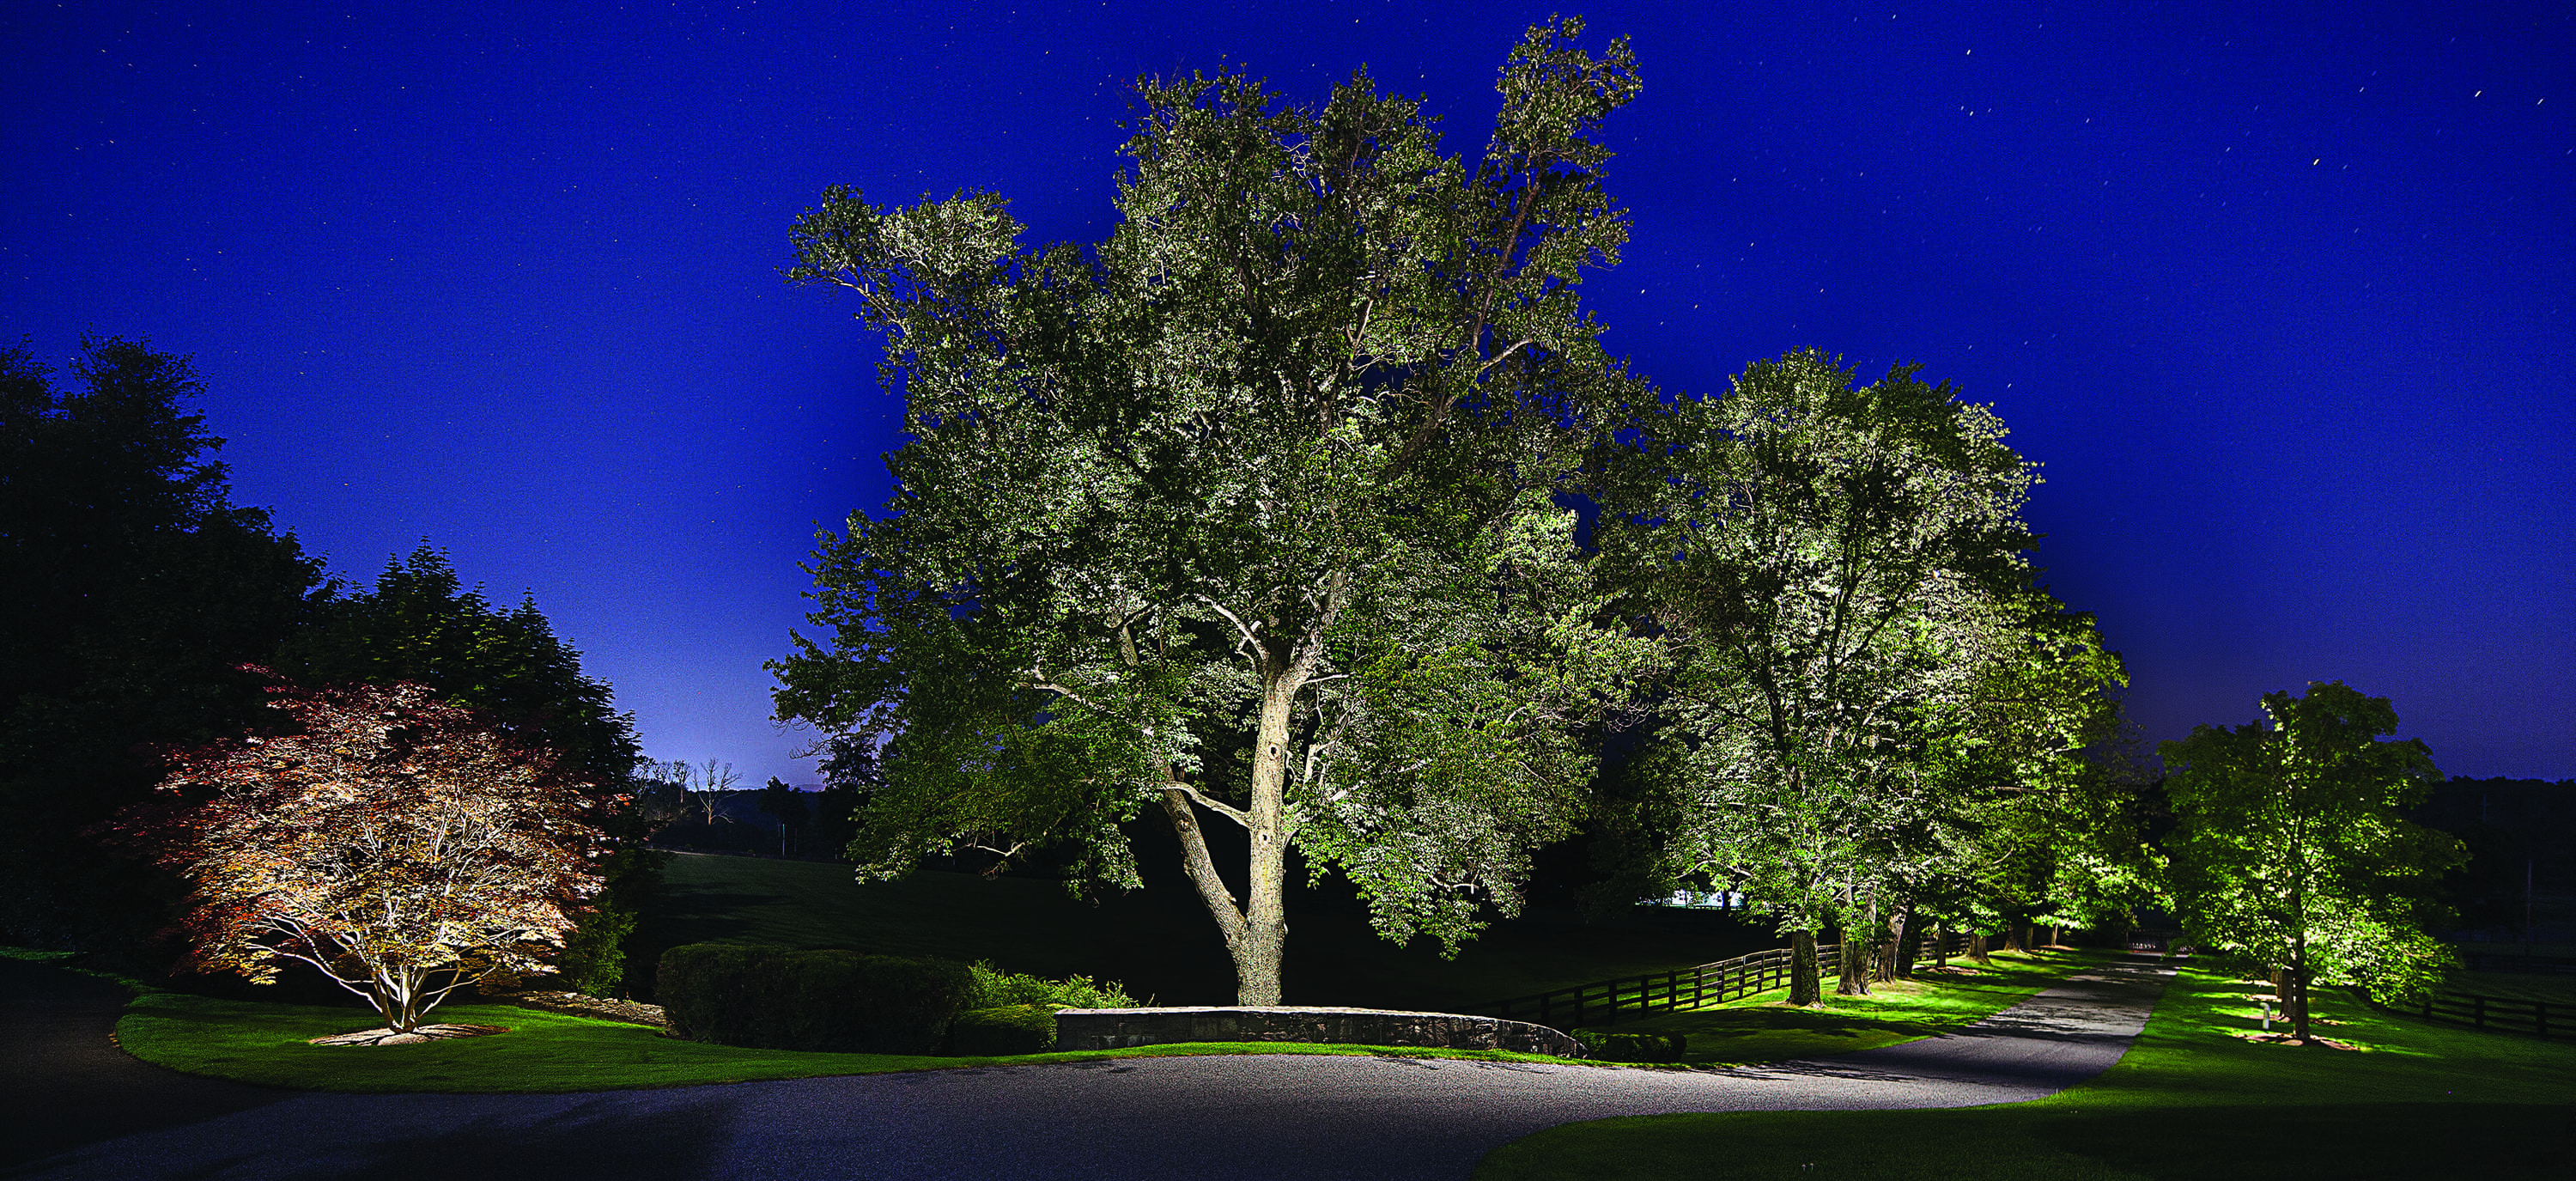 Landscape lighting design in greenwich ct marras lighting design